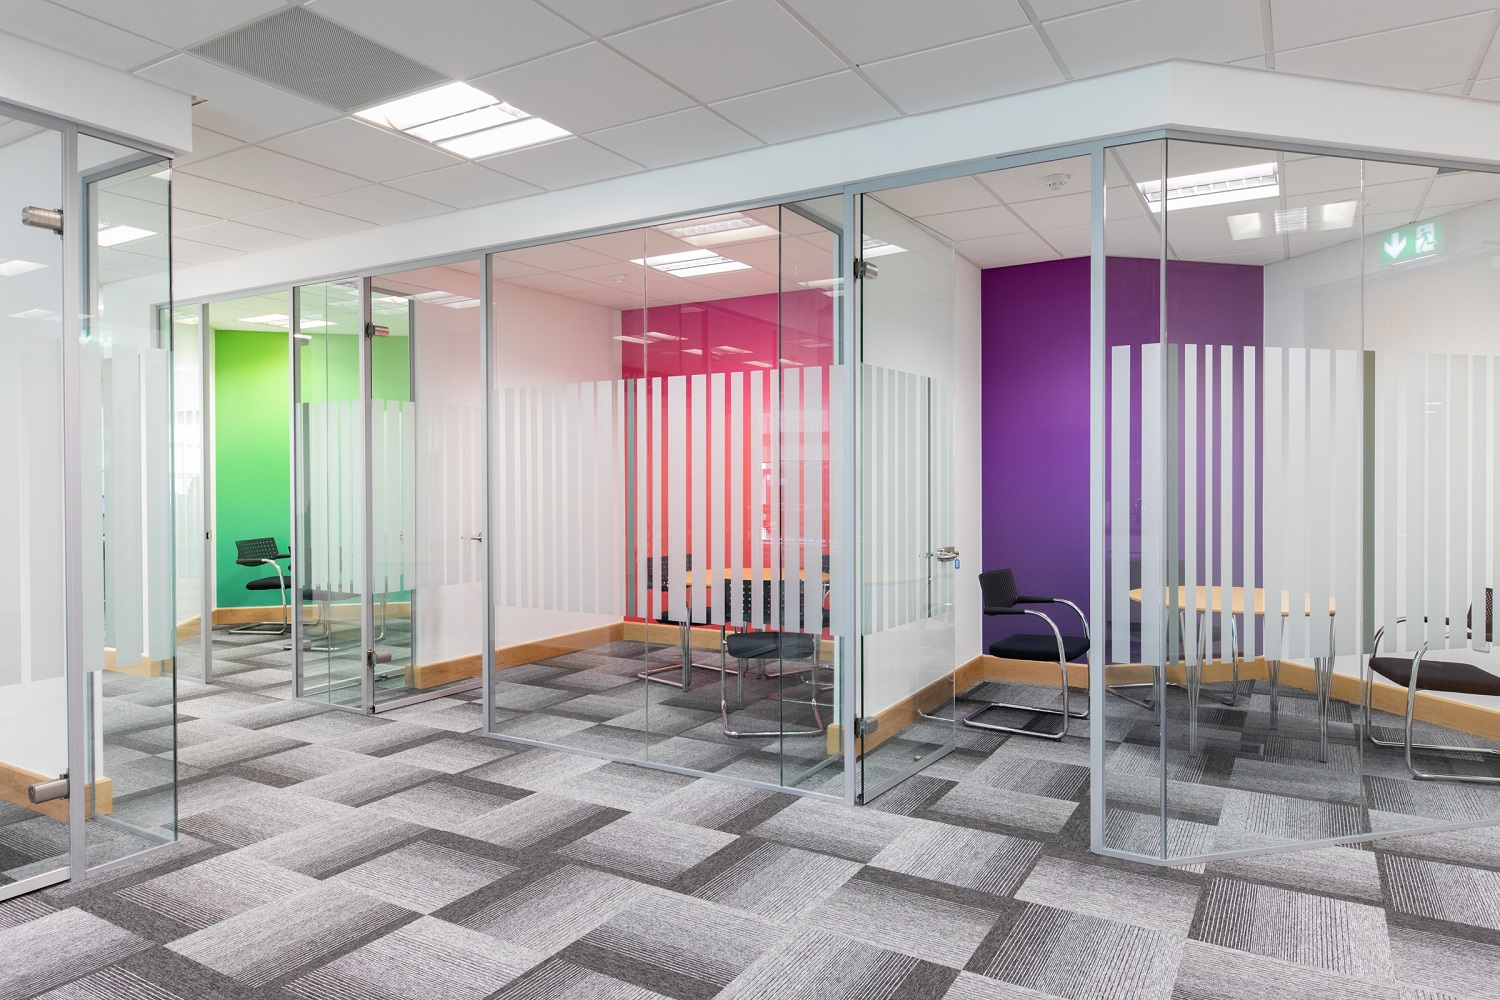 Flexibility is key to meeting occupiers' workplace needs